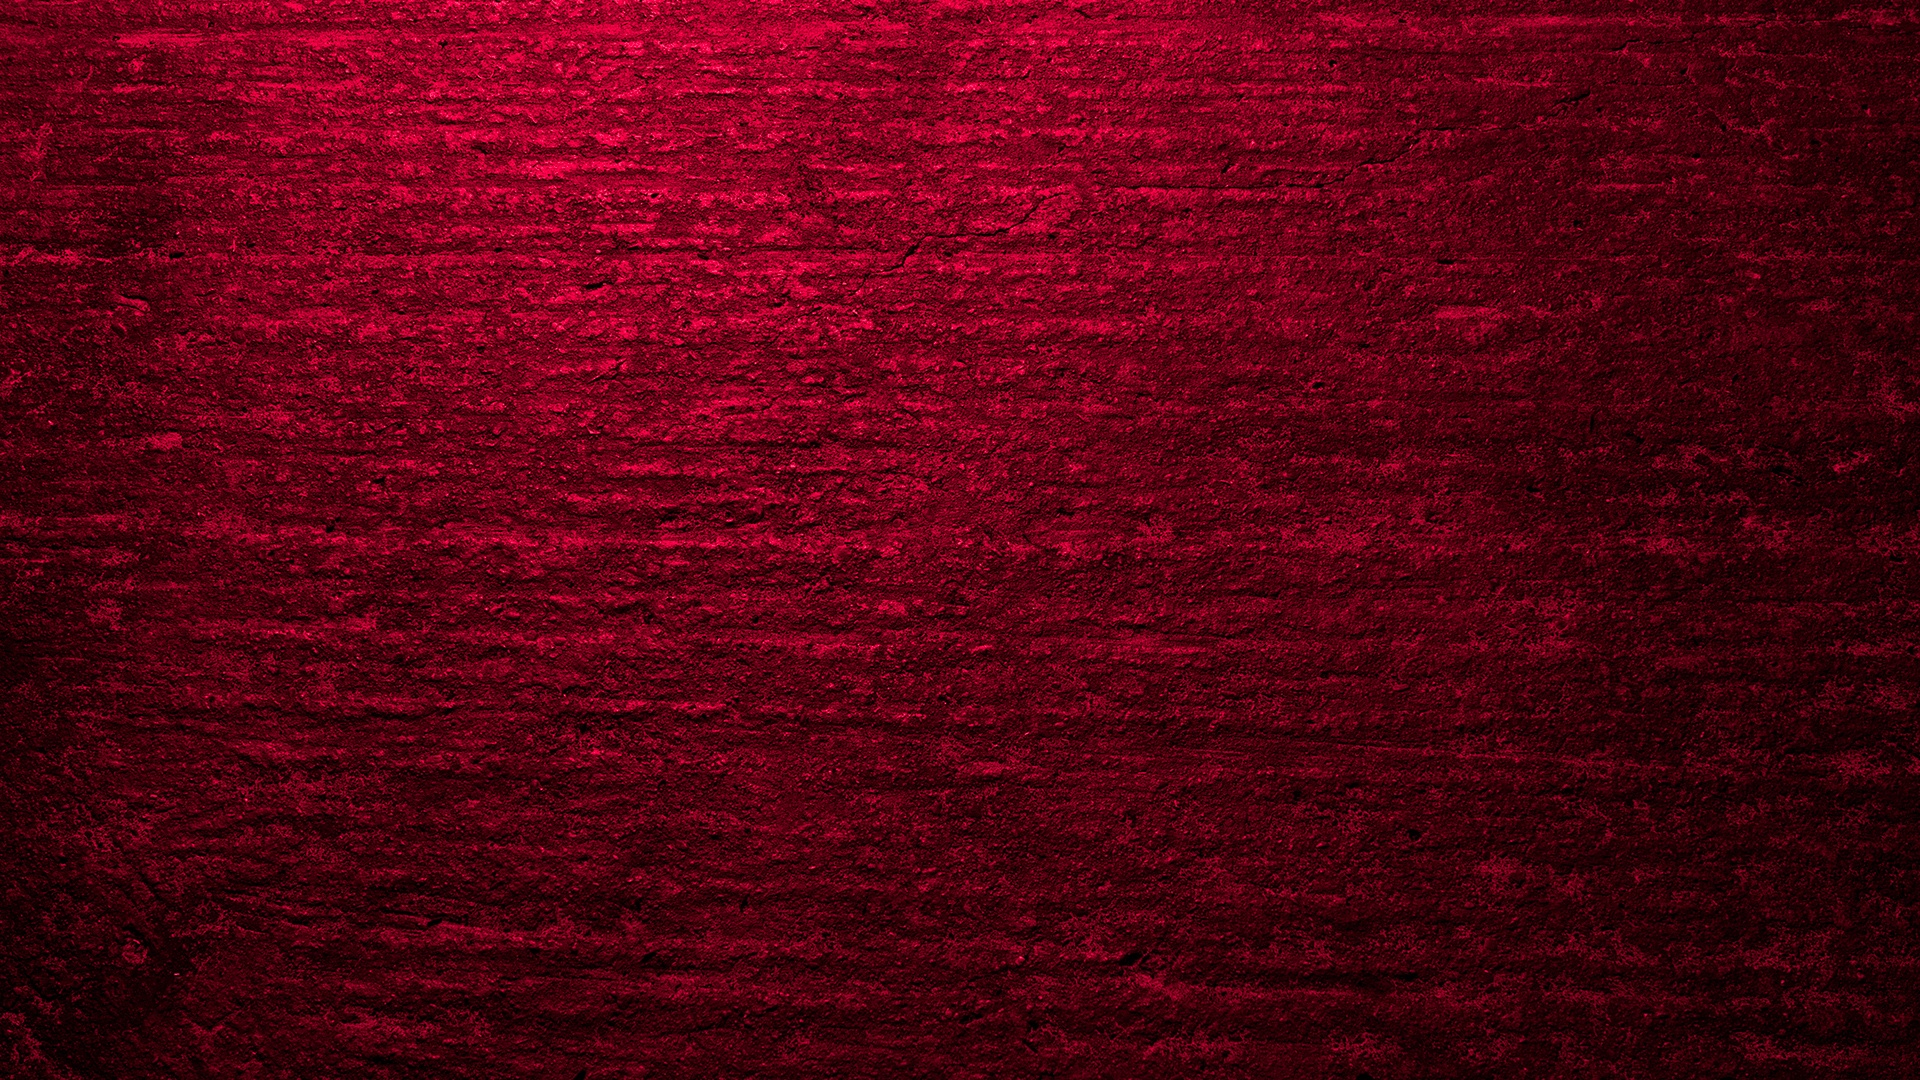 Solid Red free hd wallpaper